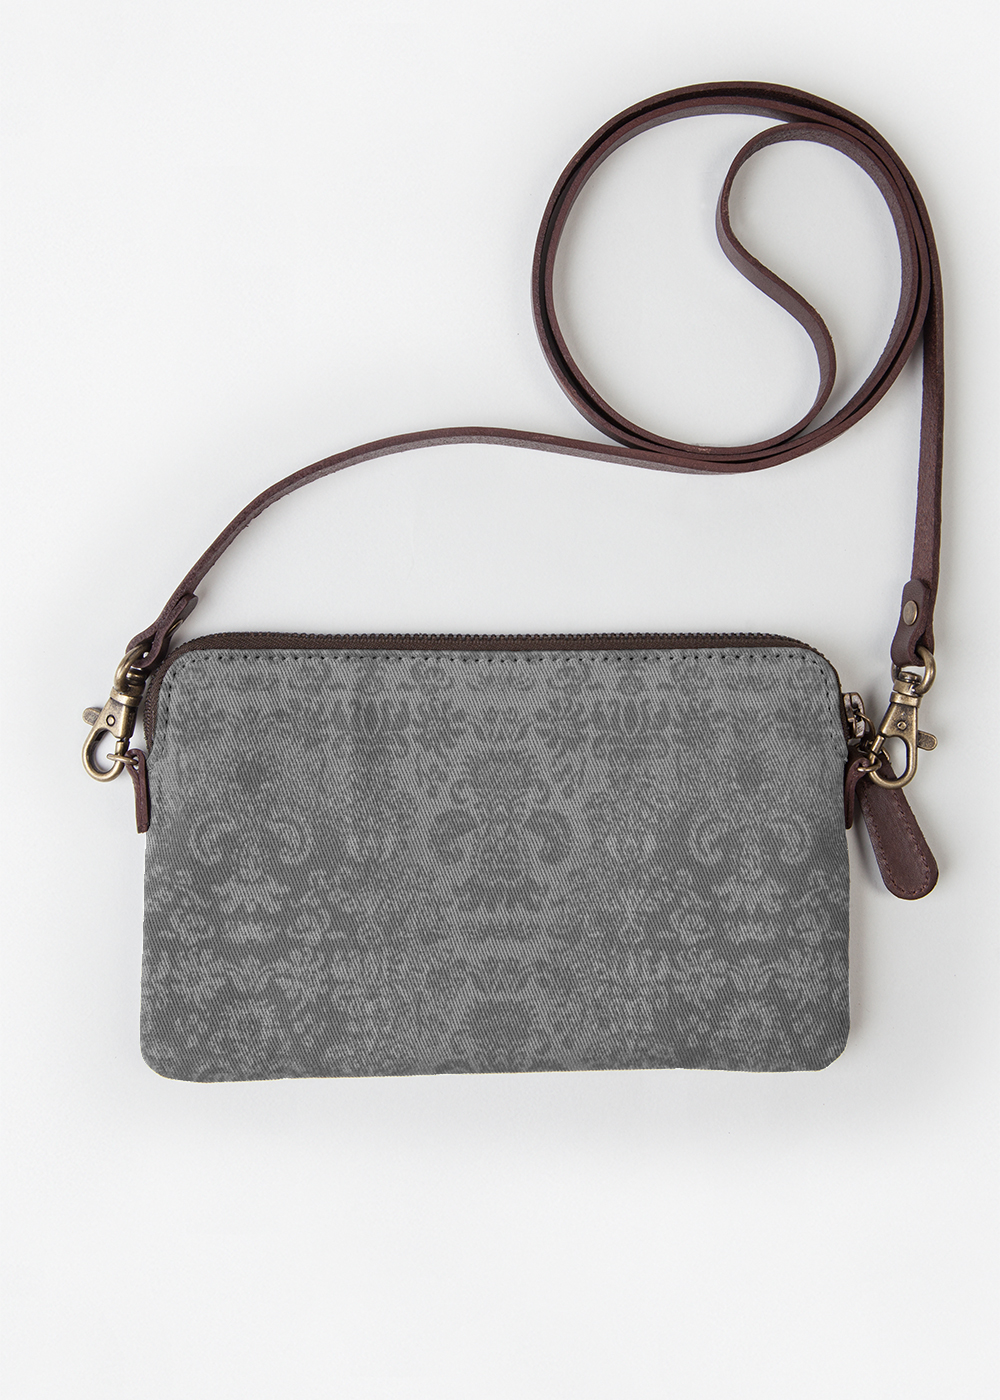 VIDA Statement Bag - Embroidery 1 by VIDA 9Or625S